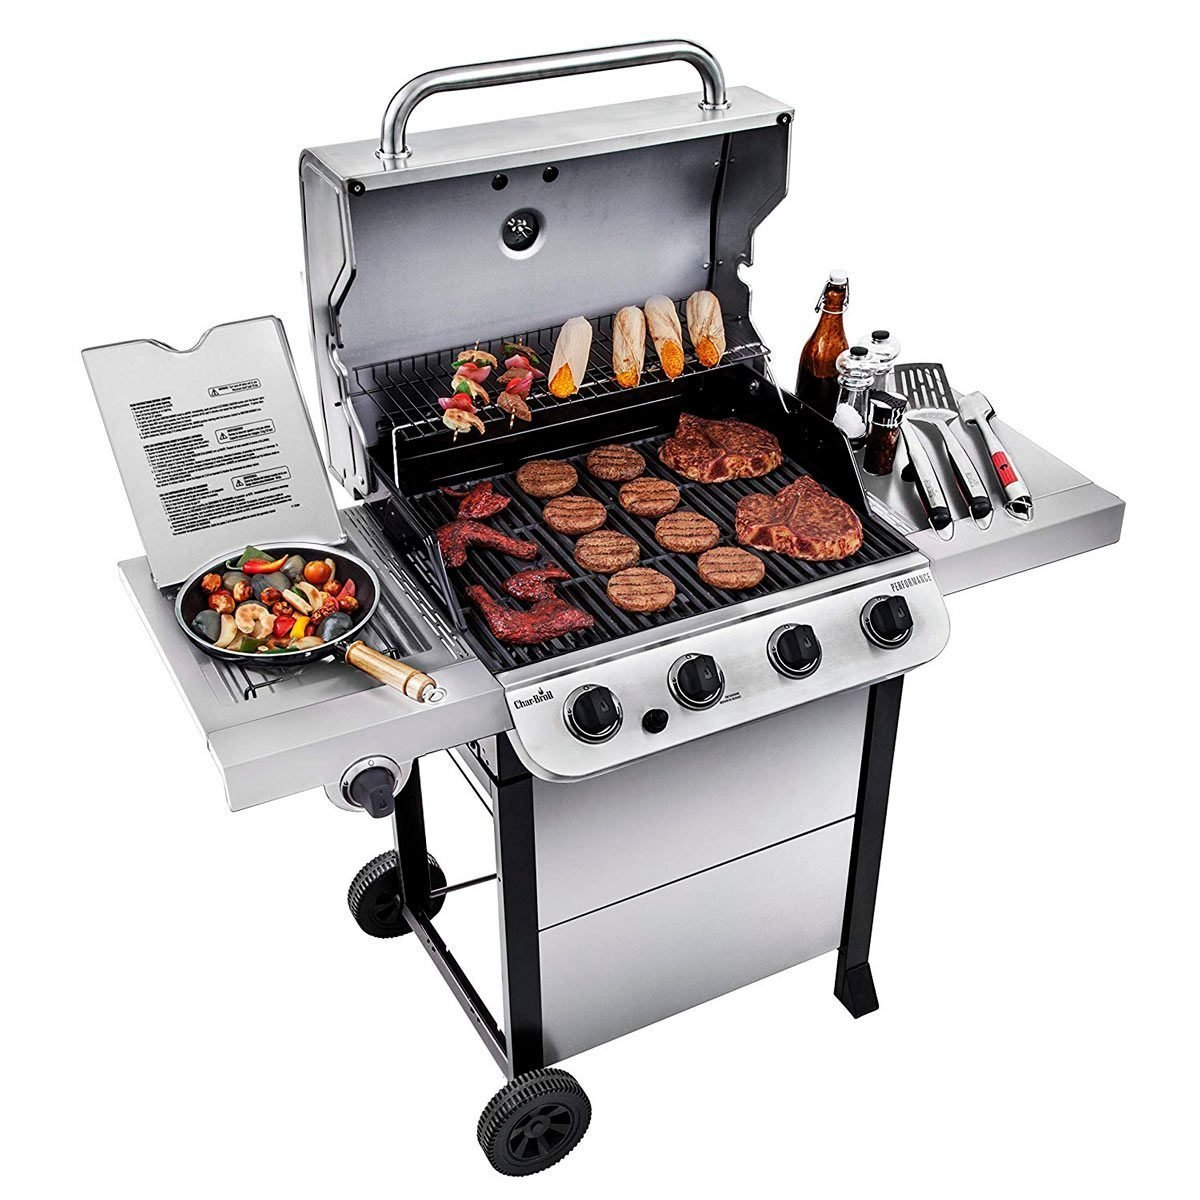 Get Your Grill On: A Guide to the Best Grilling Machines